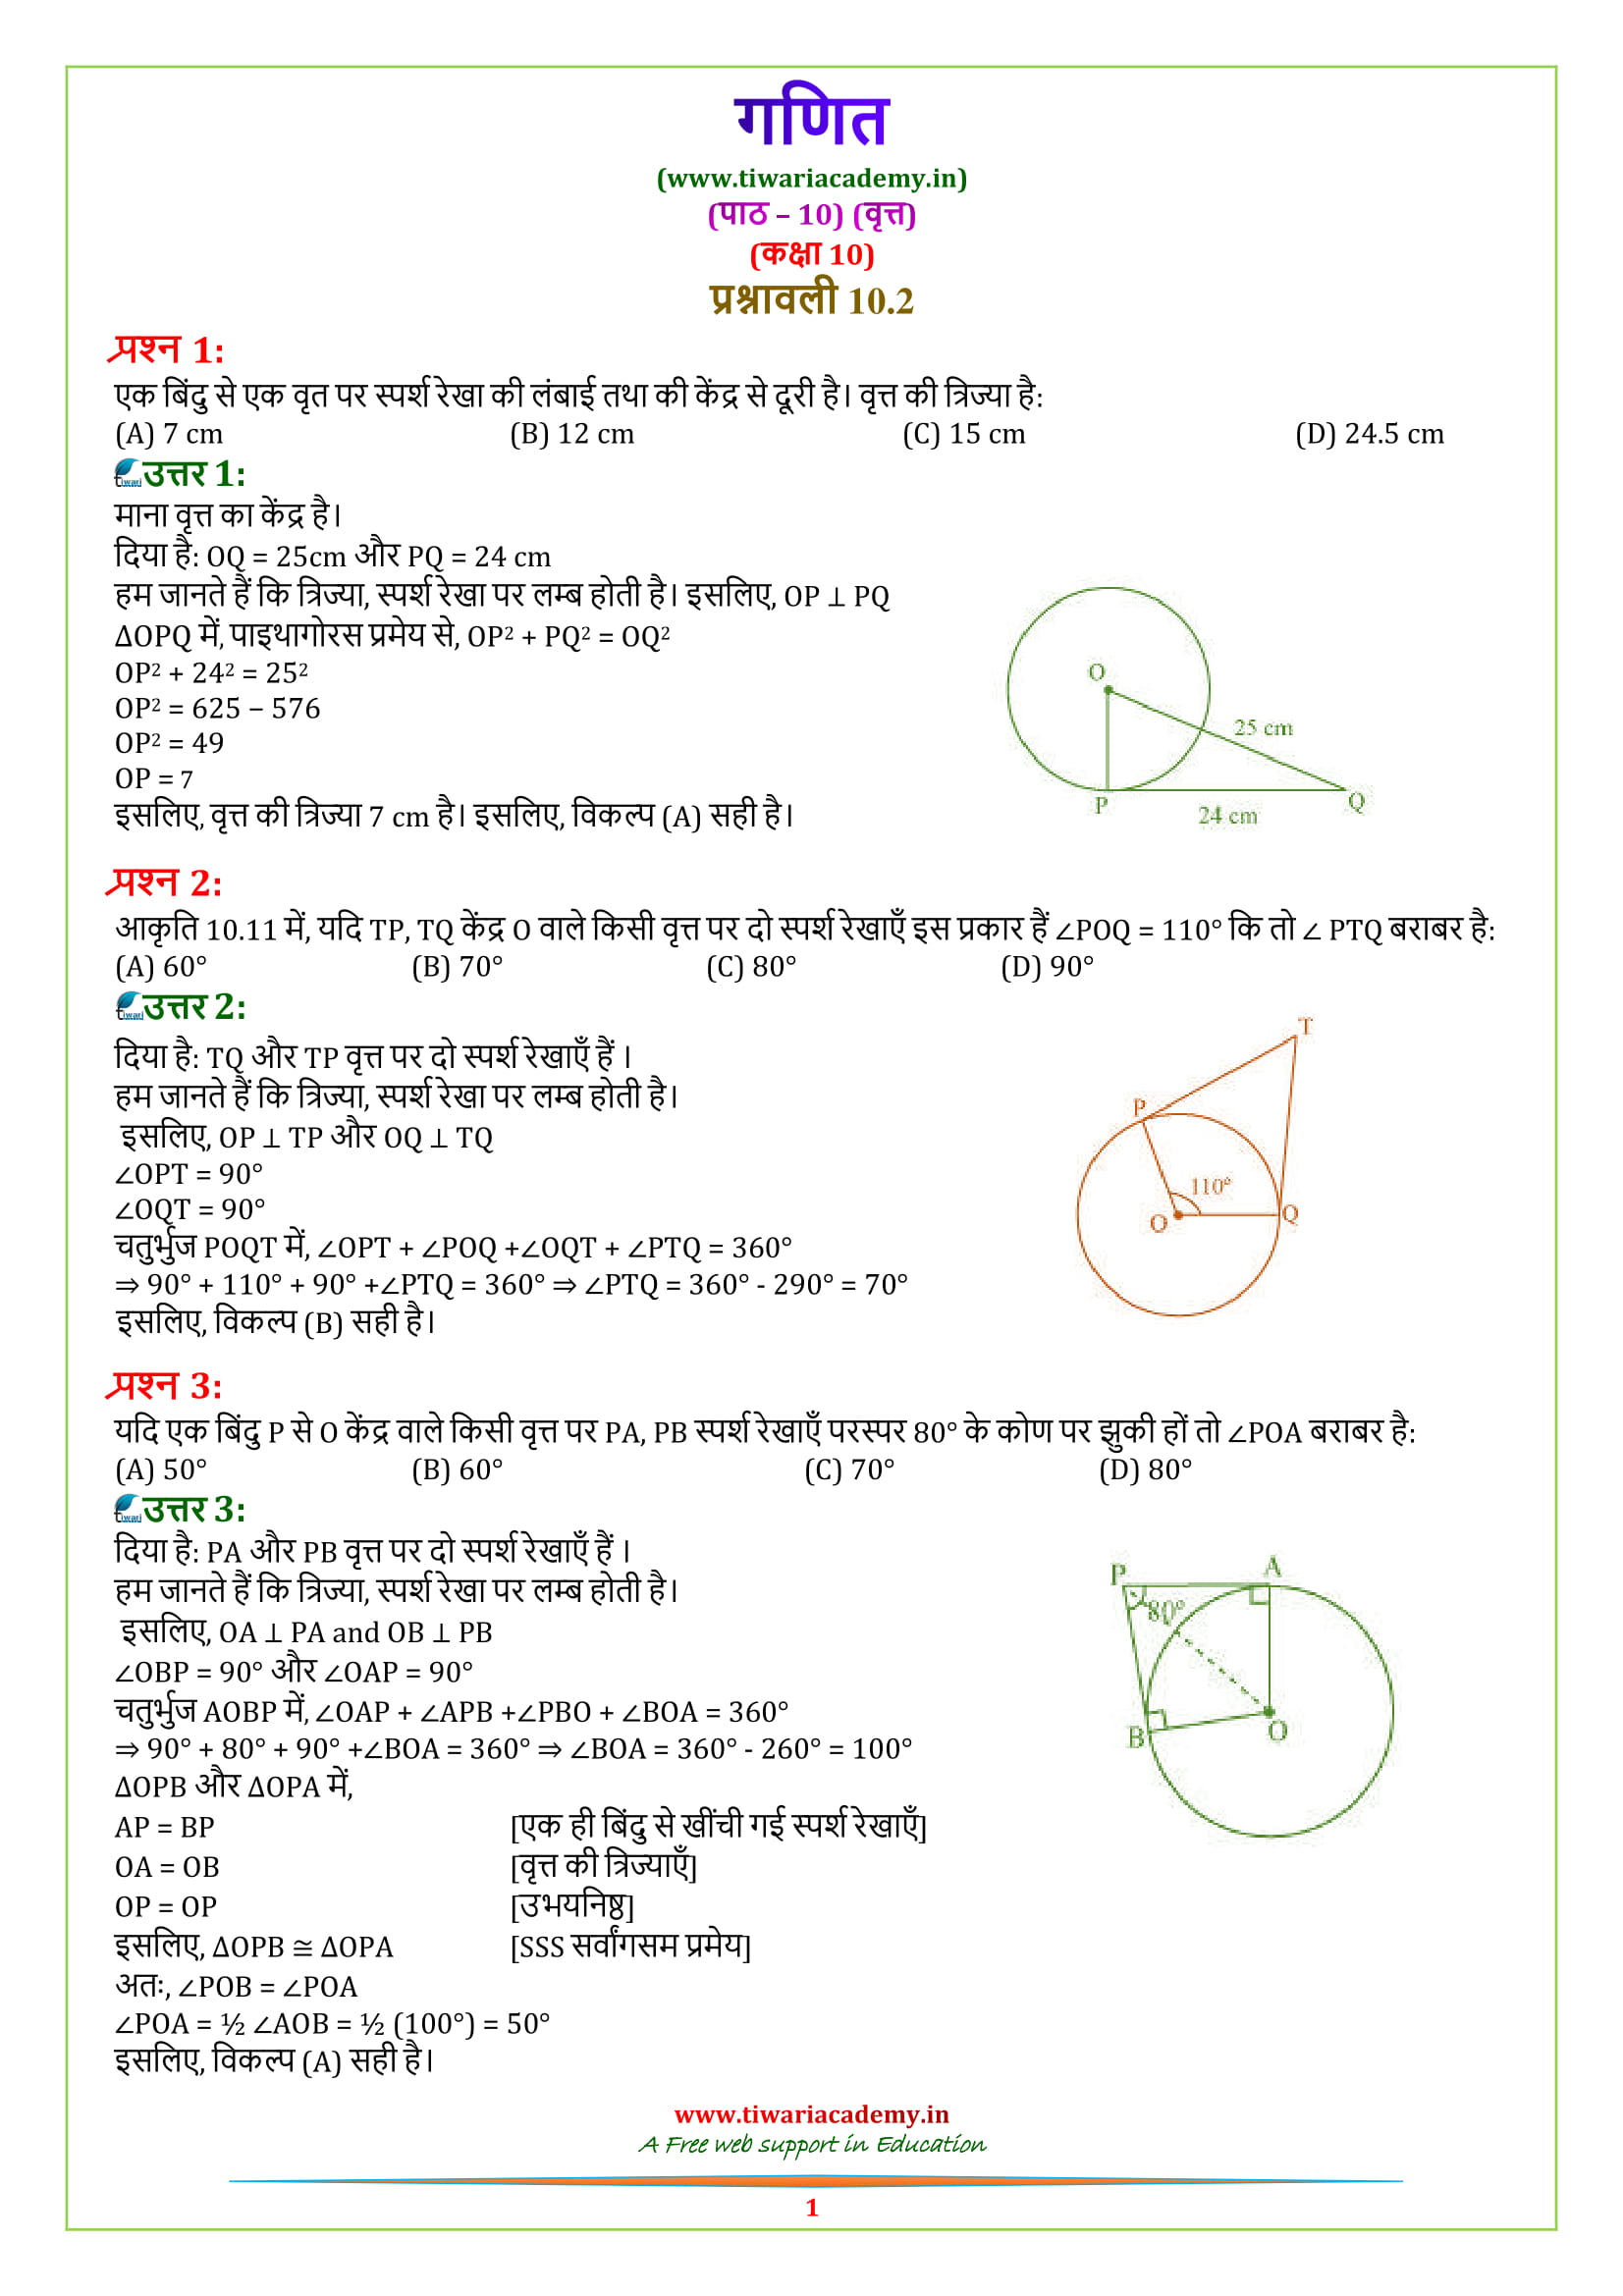 NCERT Solutions for class 10 Maths Chapter 10 Exercise 10.2 in hindi